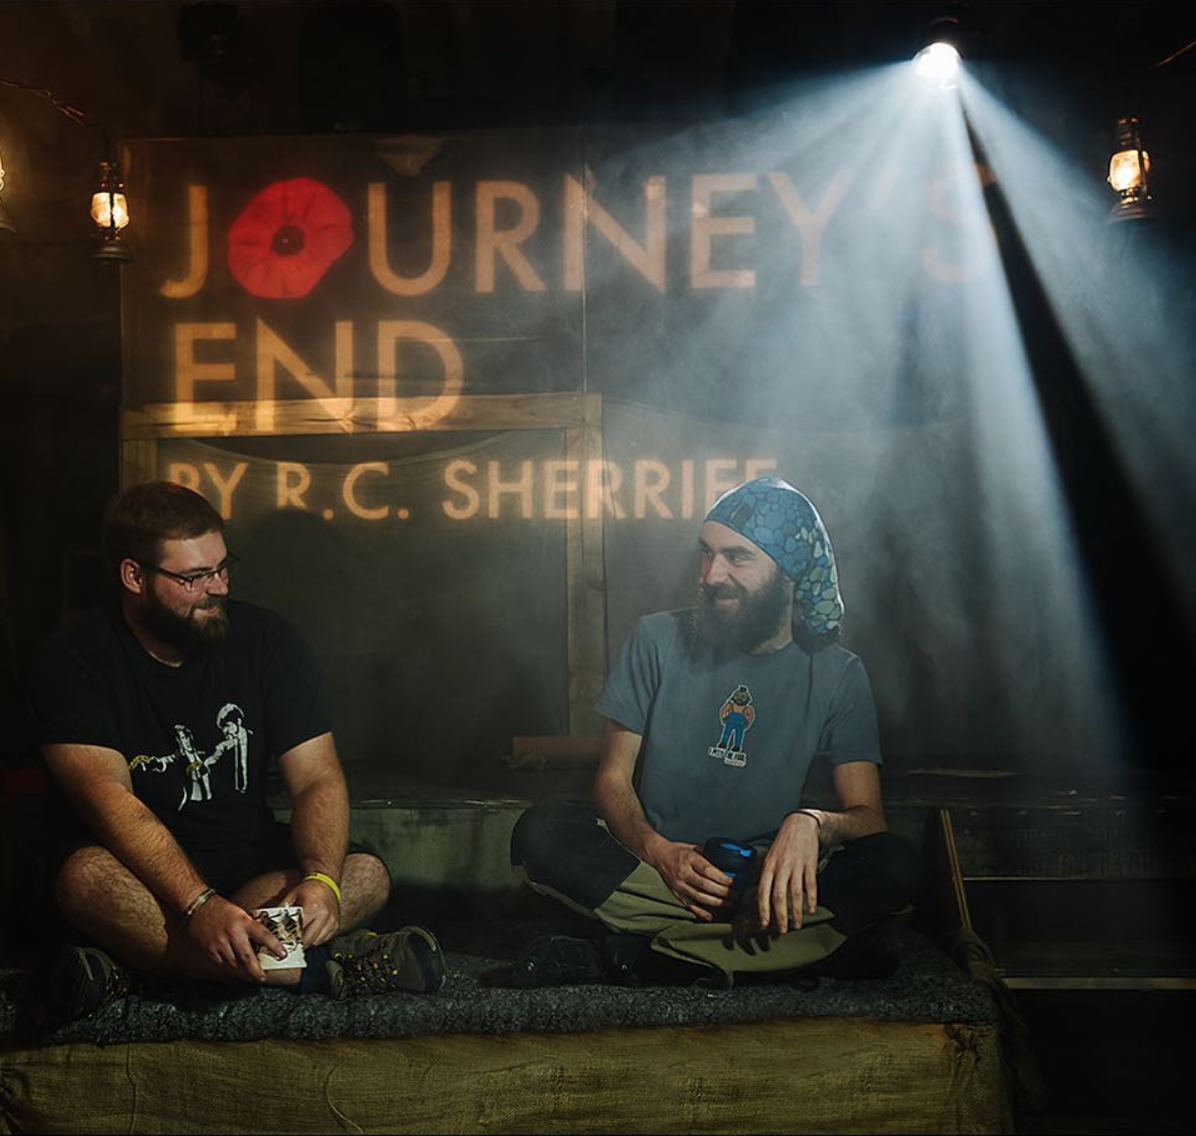 Journey's End 2018